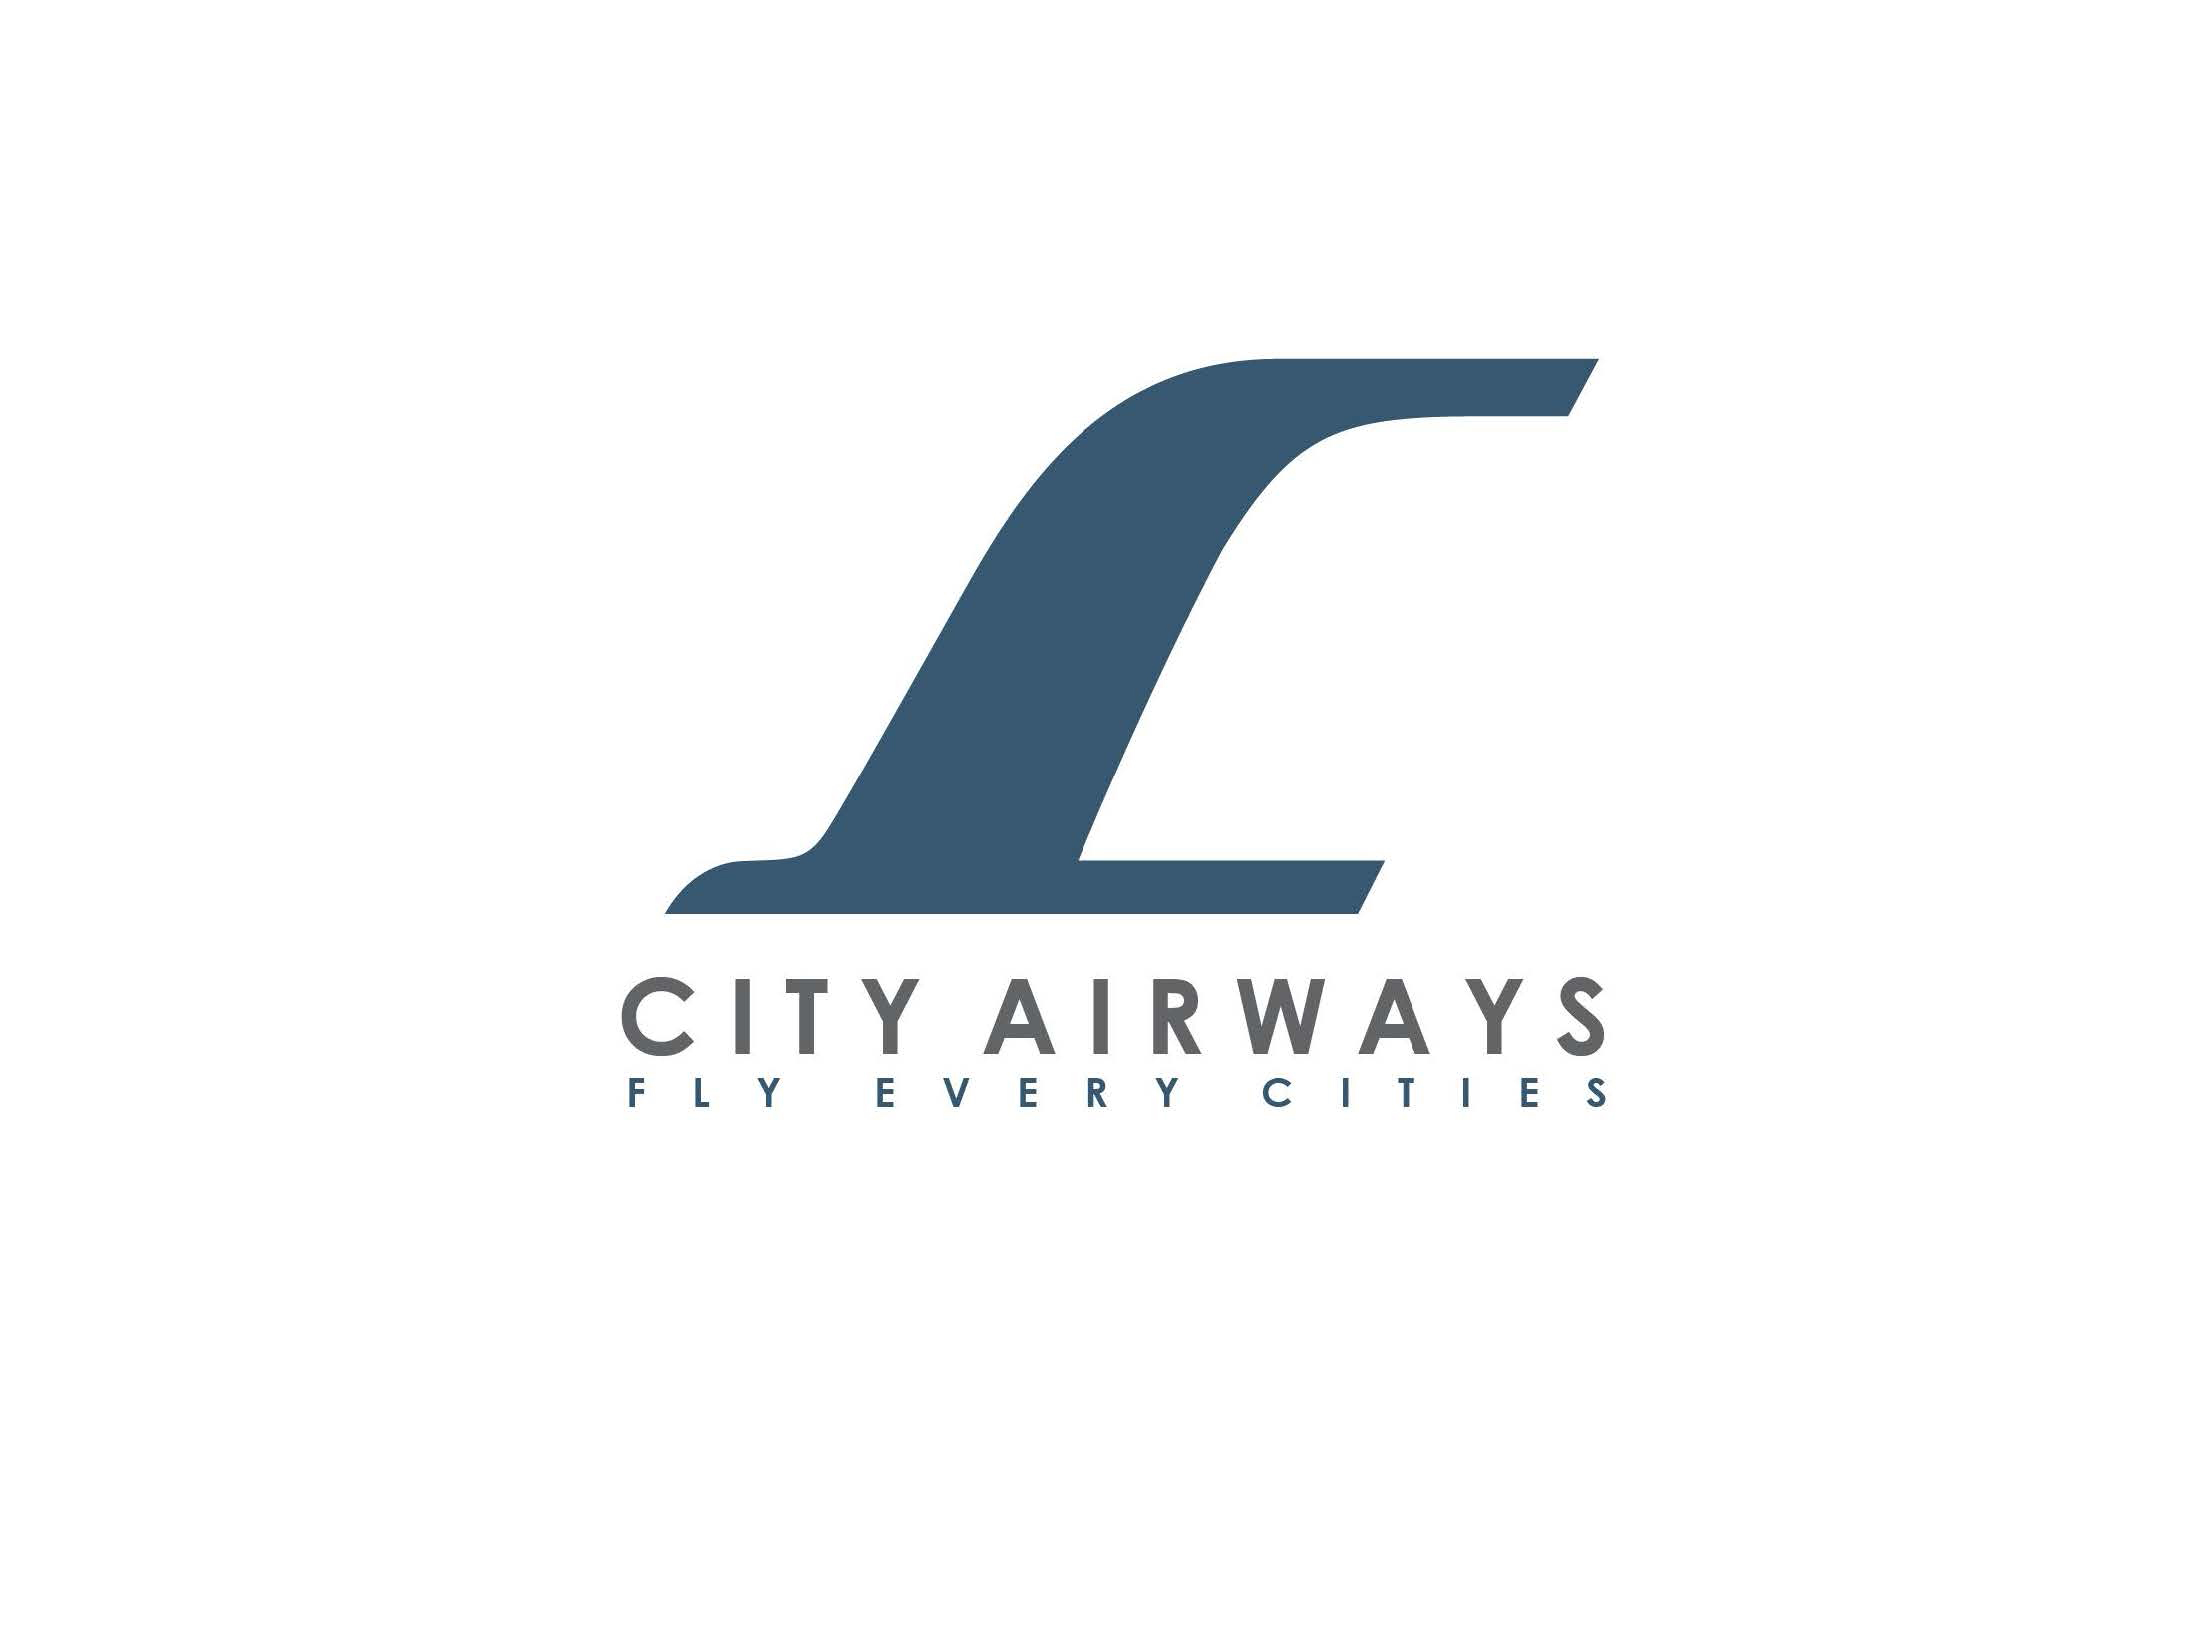 10DESIGN CITY AIRWAYS BRANDING LOGO DESIGN COMMERCIAL CORPORATE FLIGHT 07